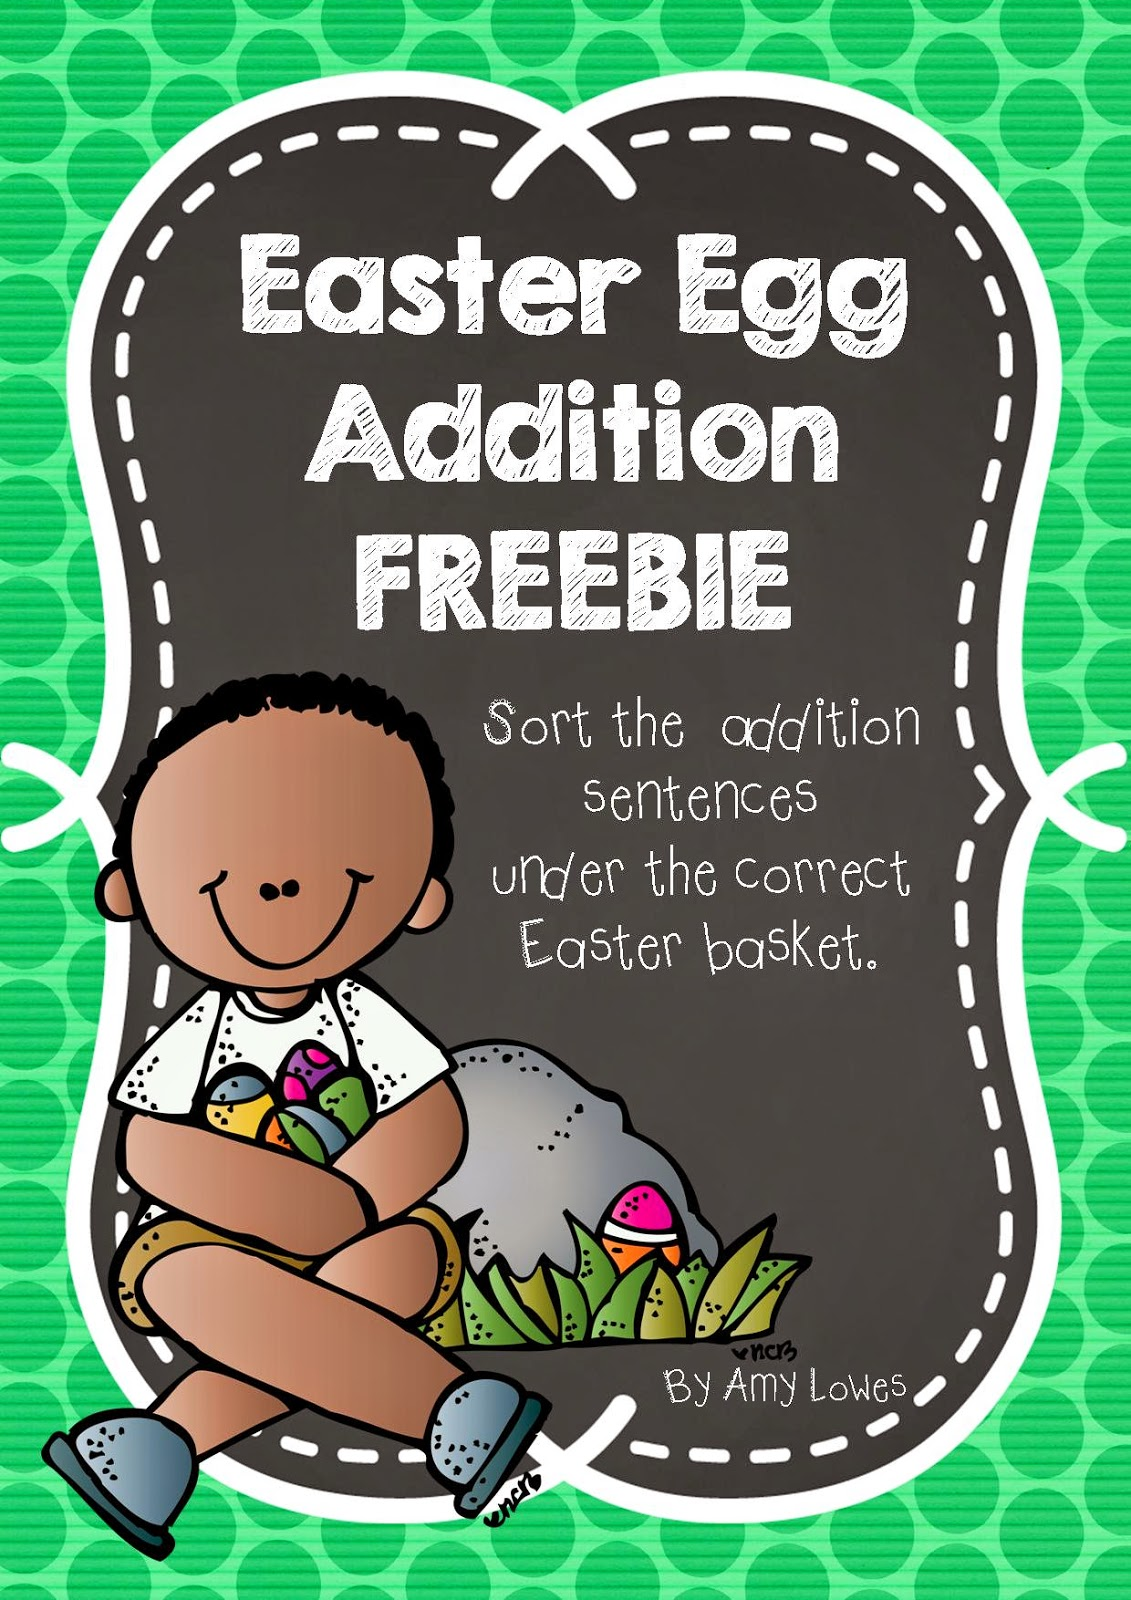 http://www.teacherspayteachers.com/Product/Easter-Egg-Addition-FREEBIE-1197604